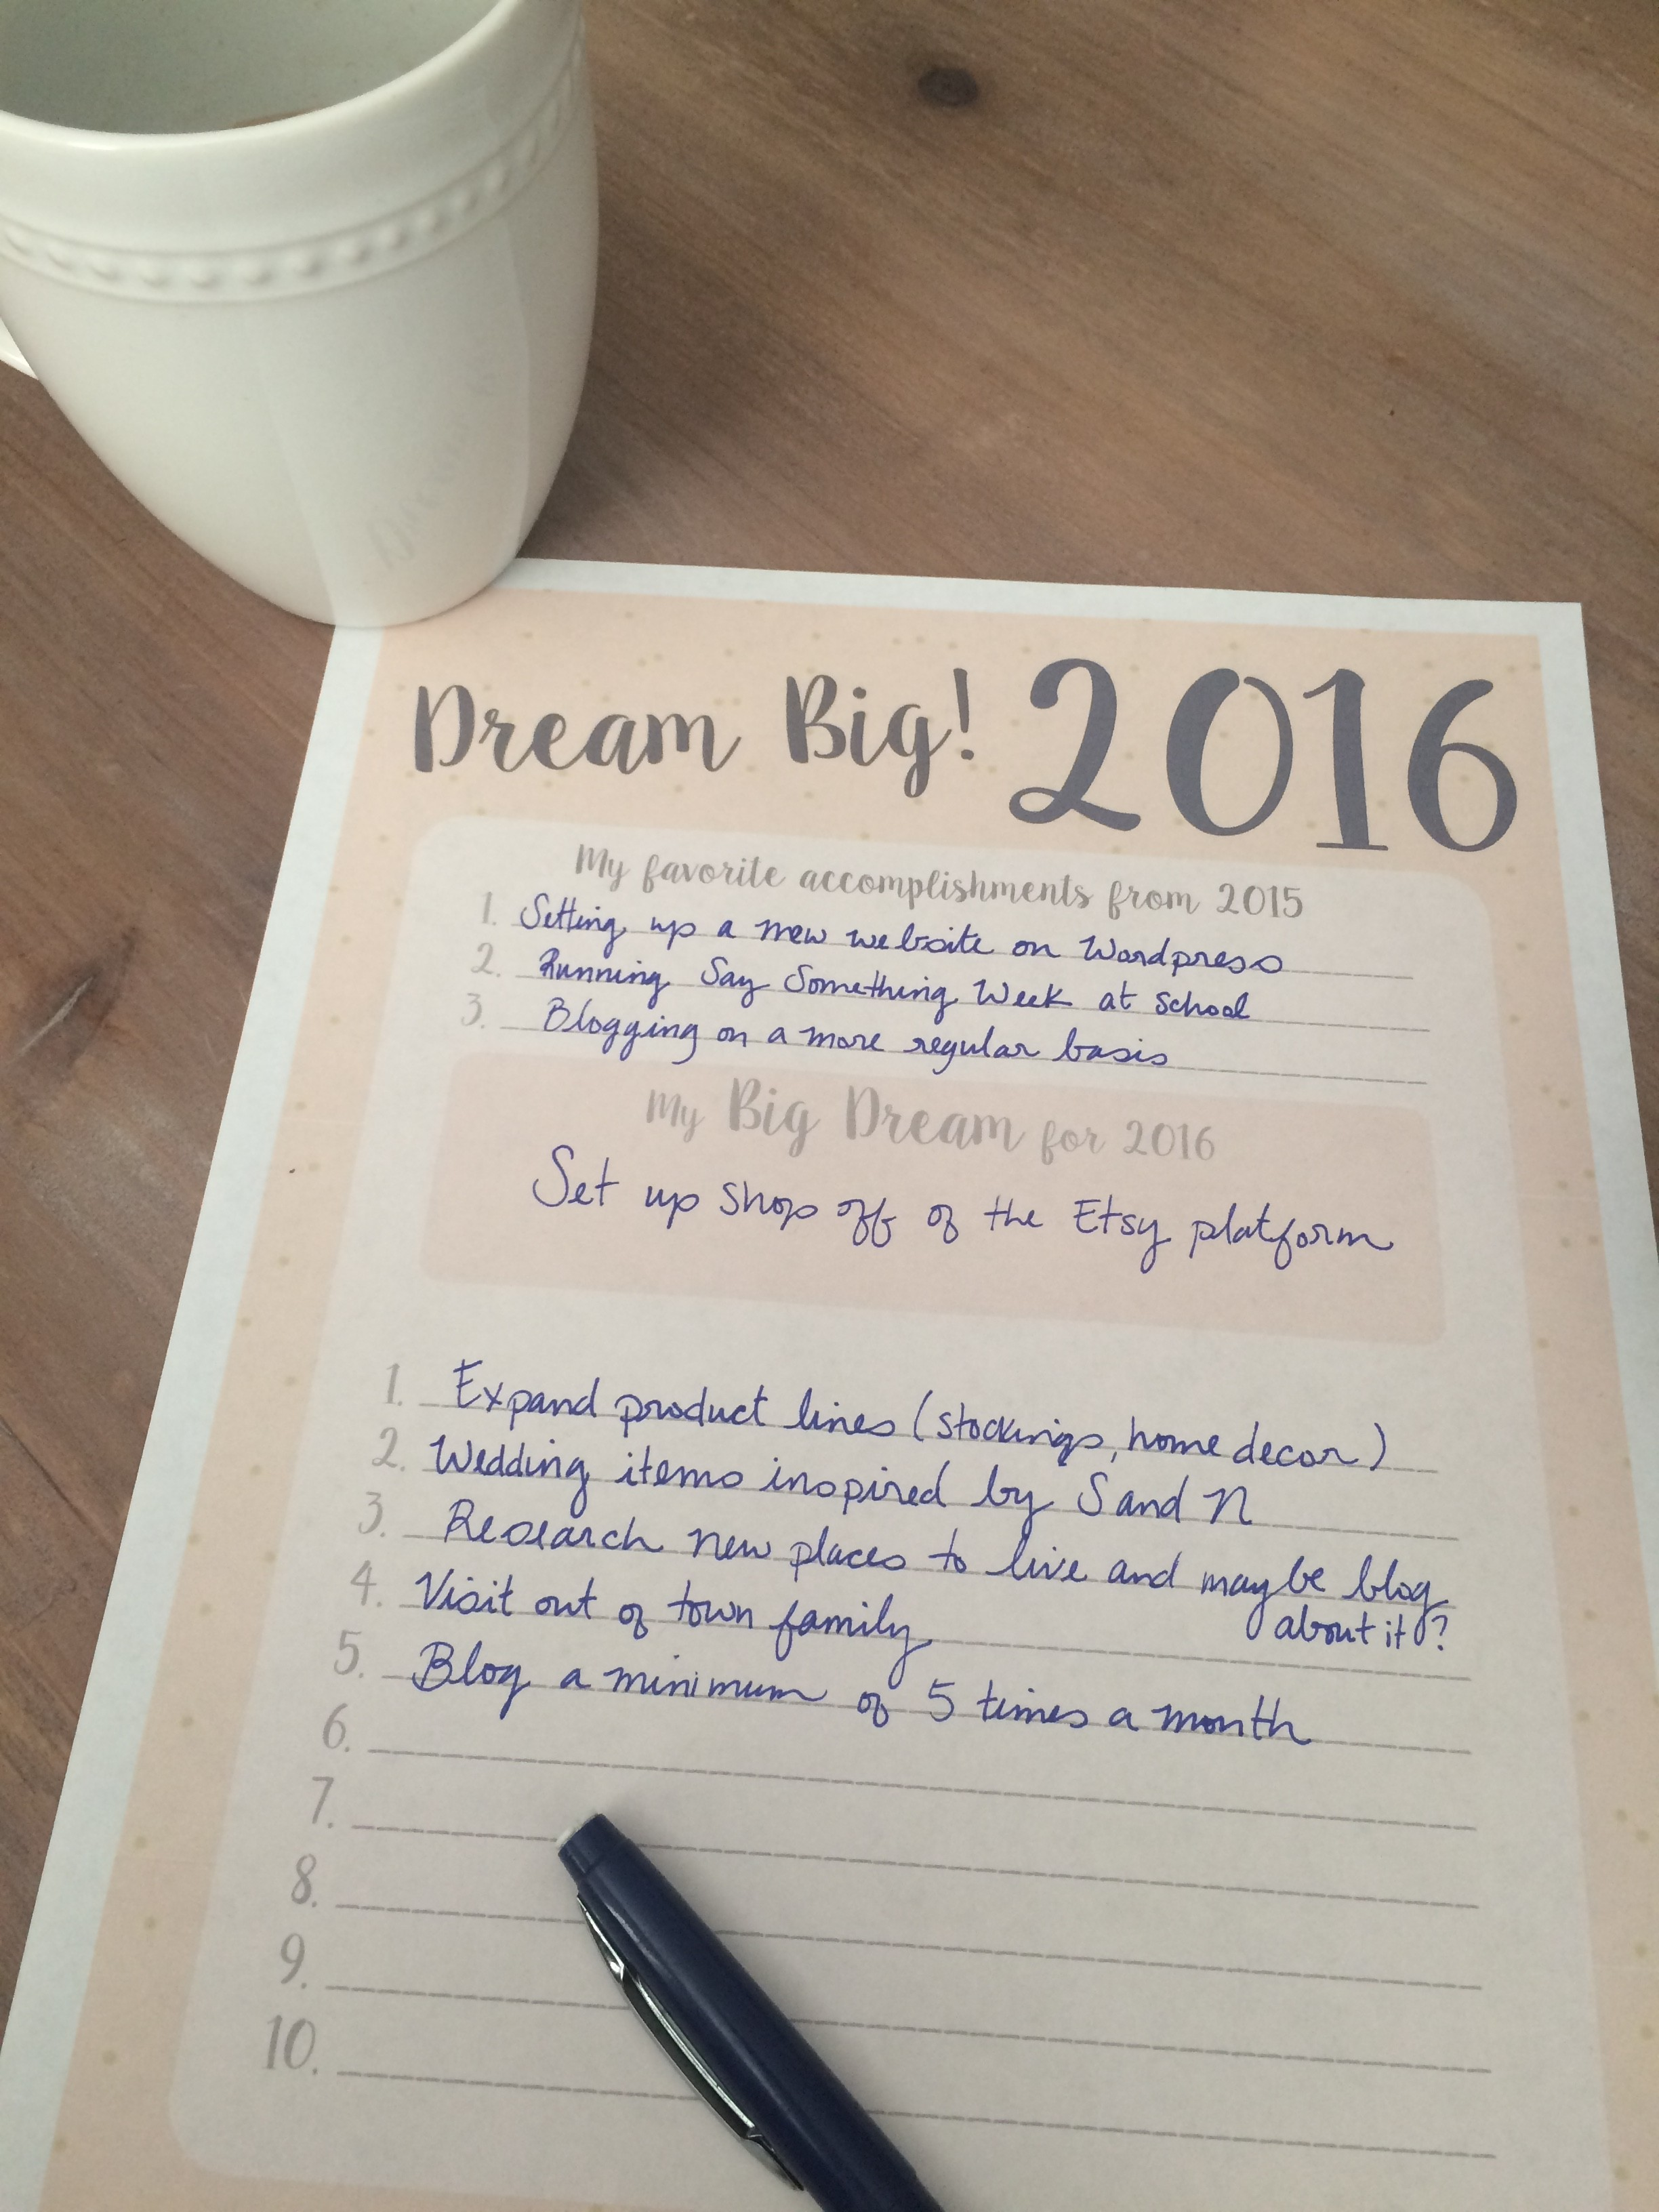 Dream Big In Goal Setting For The New Year